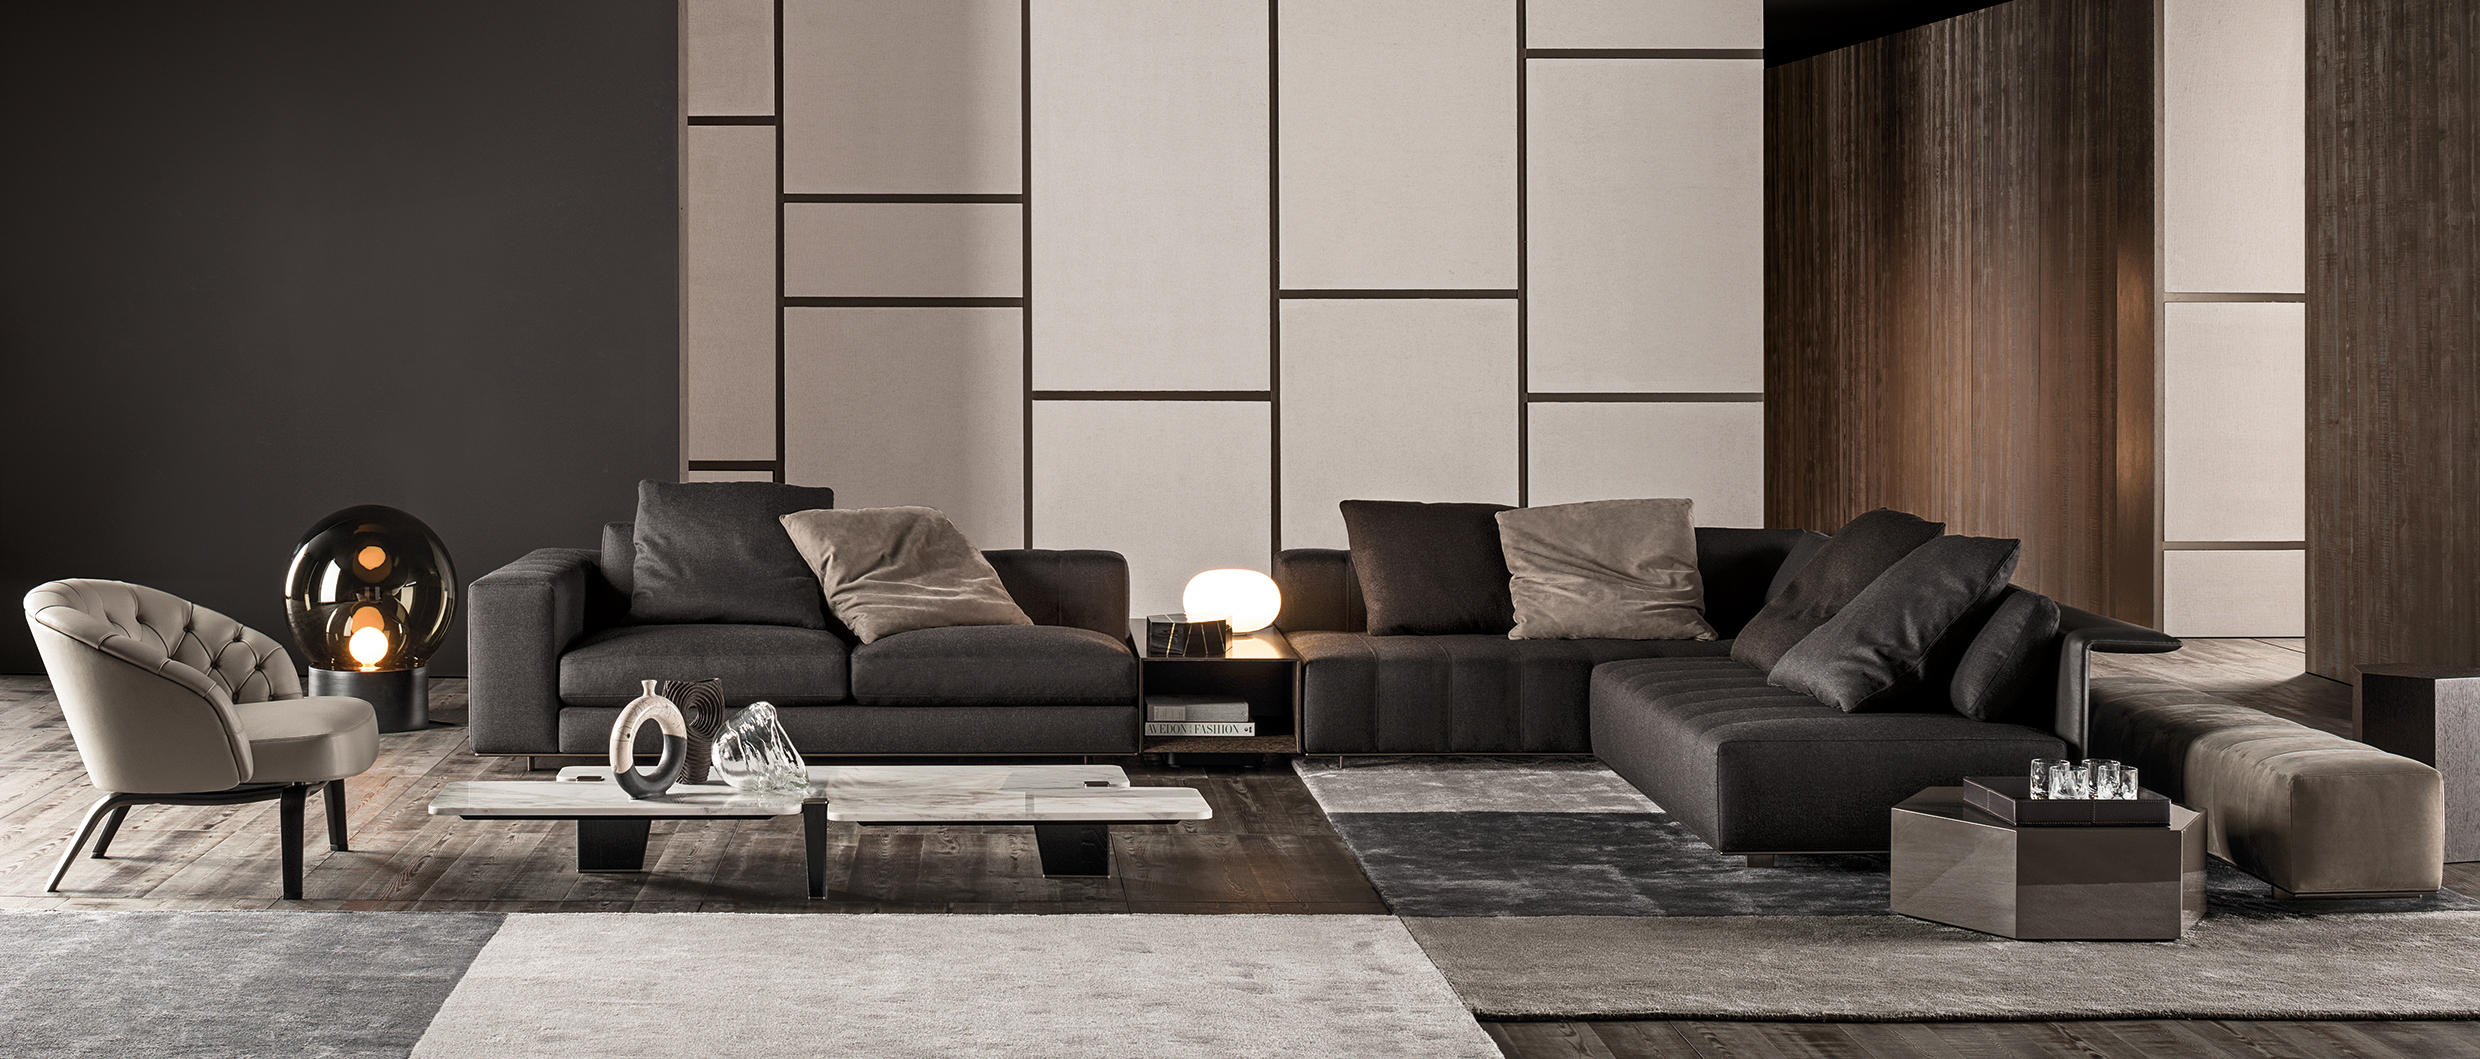 freeman duvet sofa lounge sofas from minotti architonic. Black Bedroom Furniture Sets. Home Design Ideas